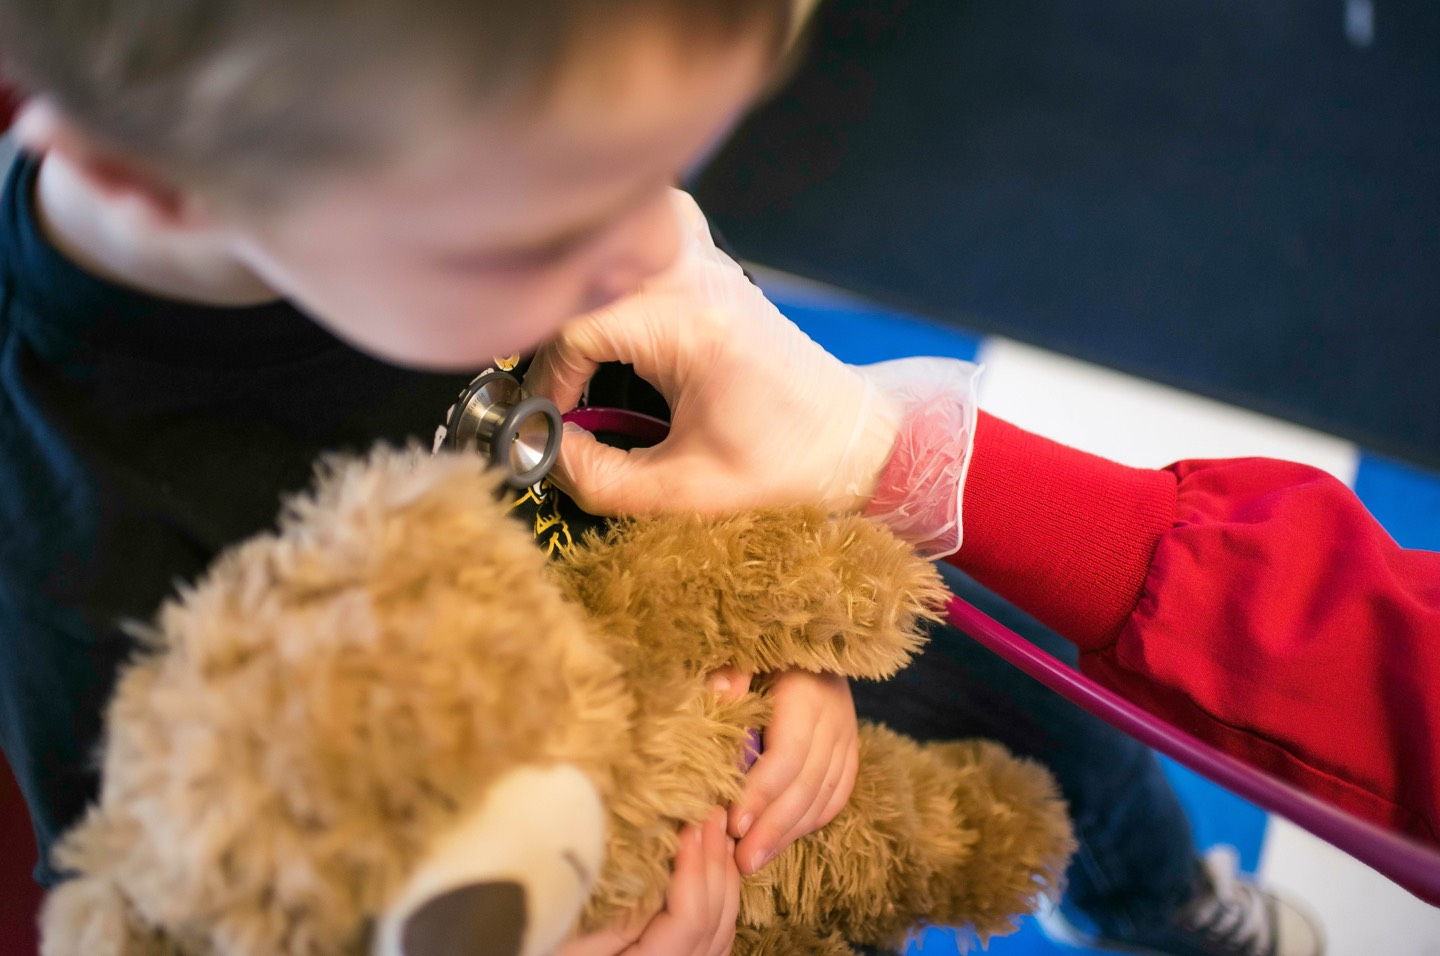 Kid holding teddy bear while a nurse listens to his chest with a stethoscope